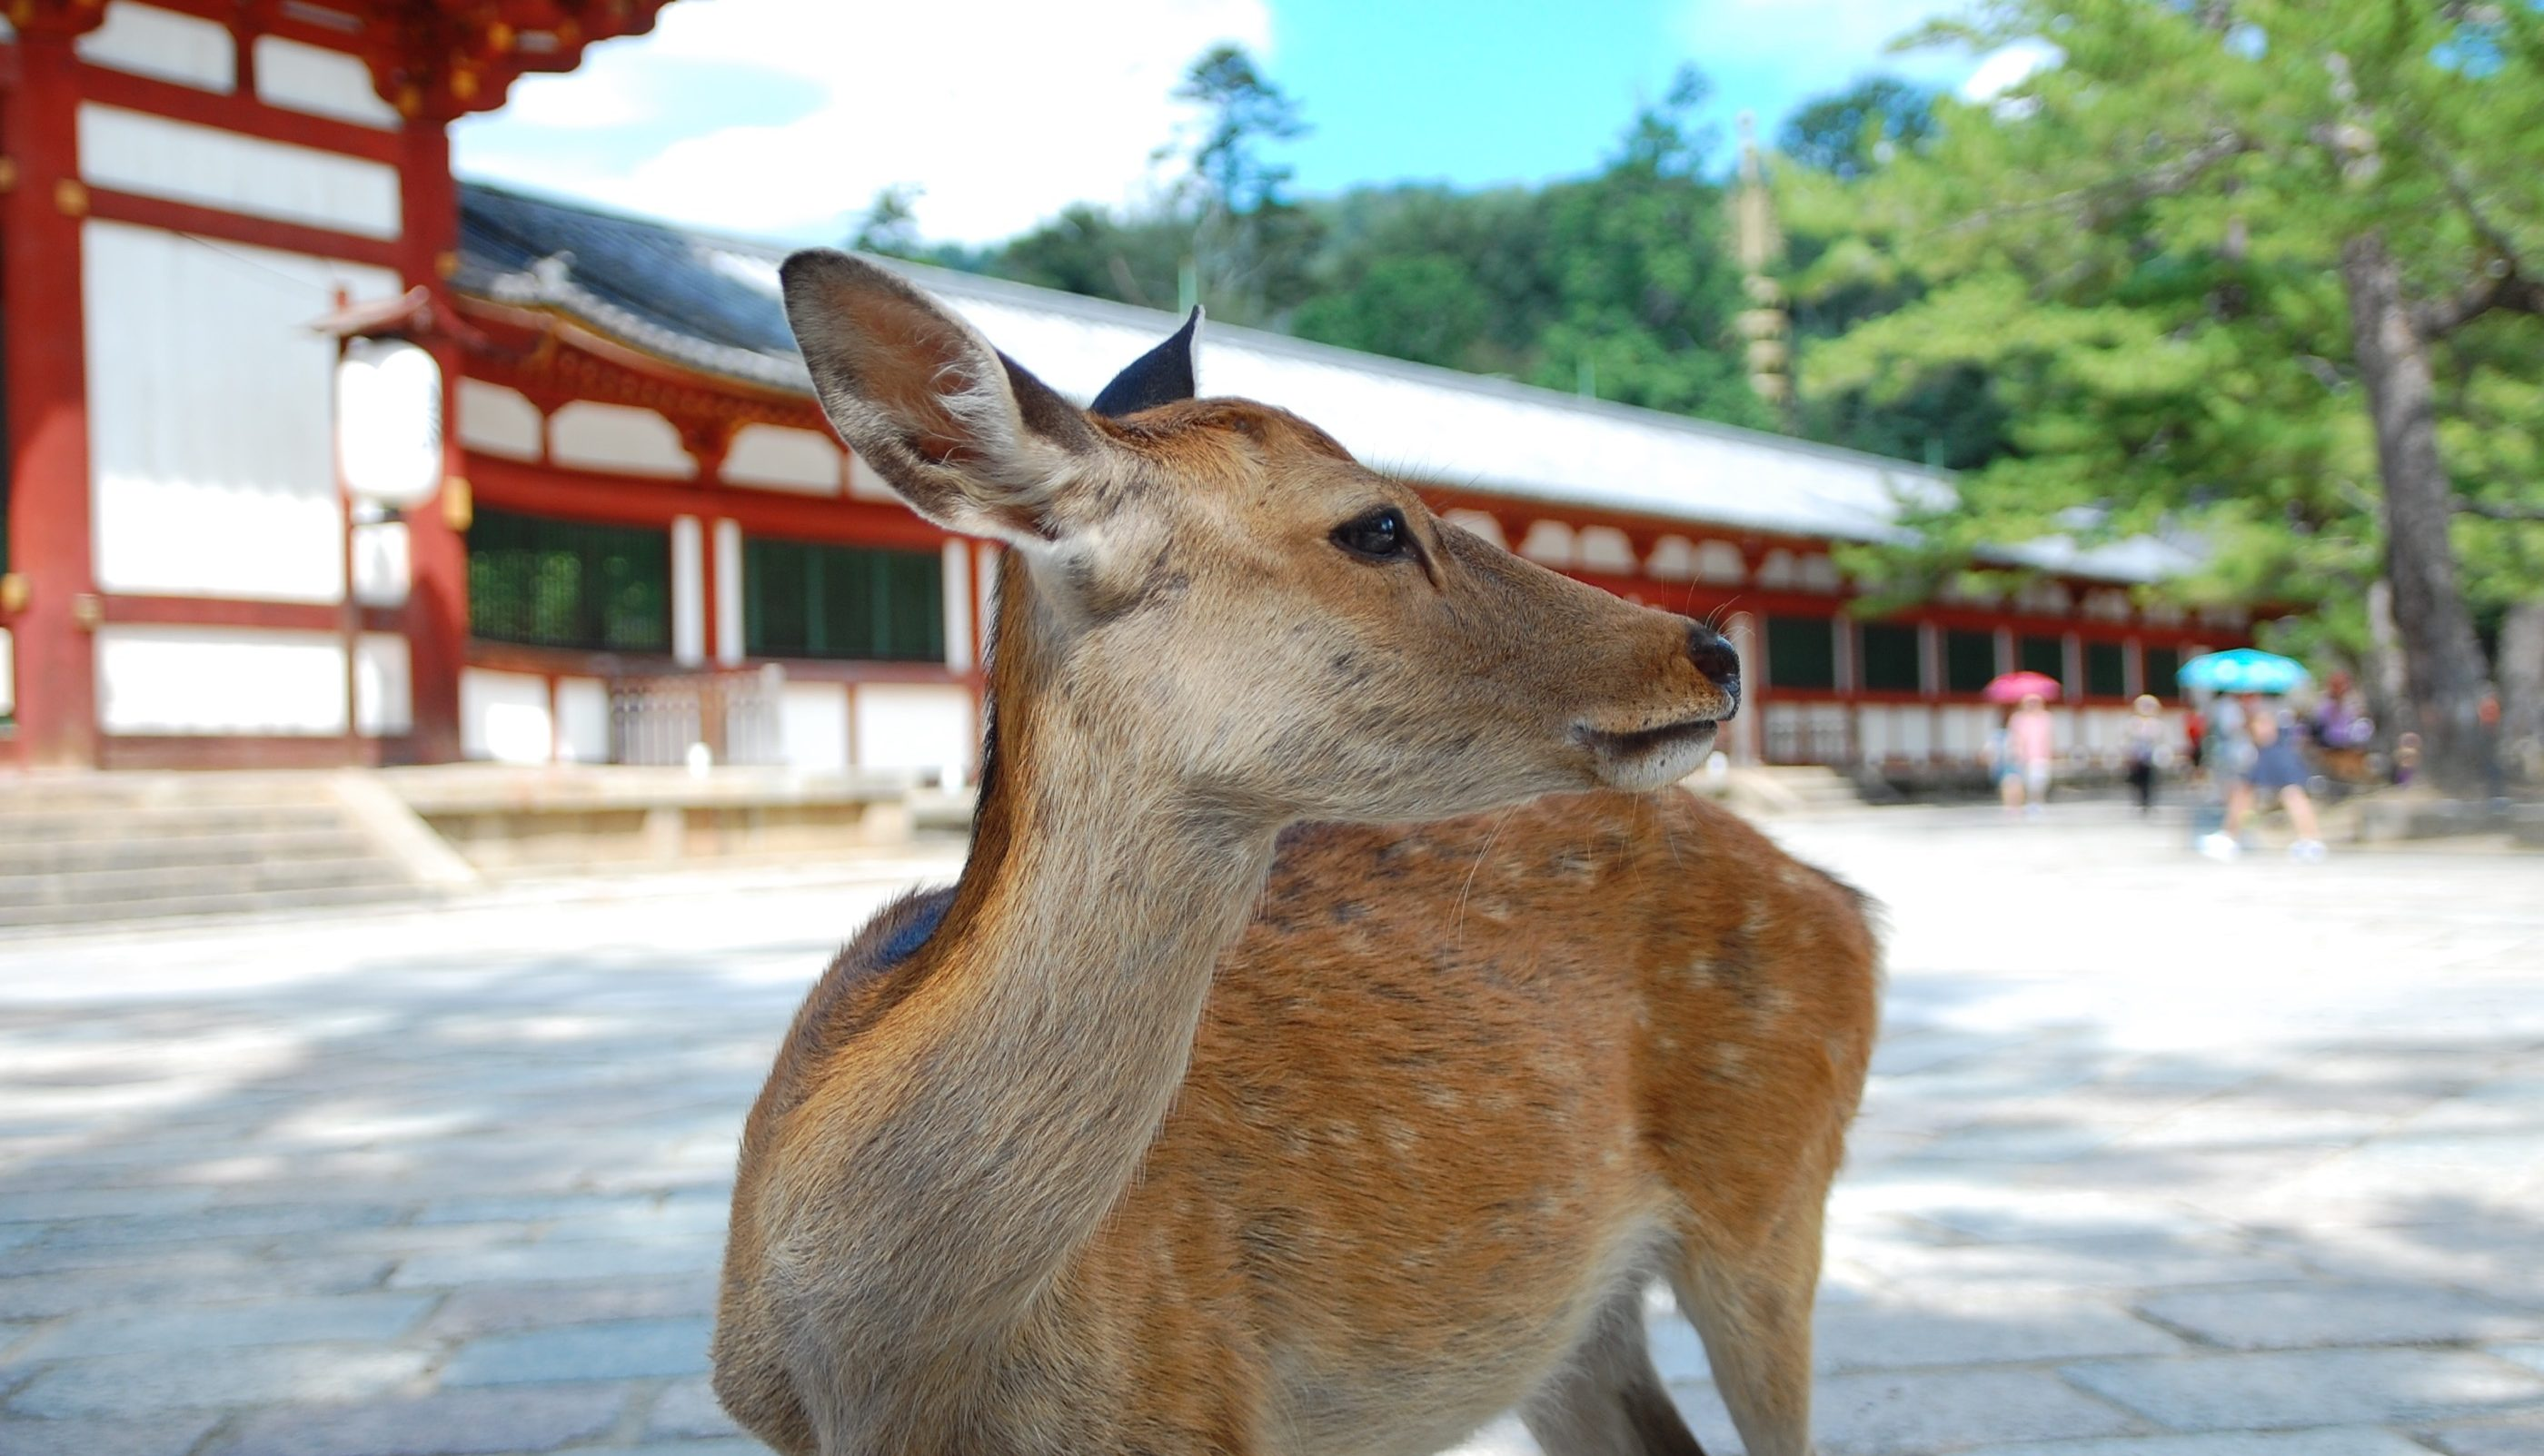 Divine messengers : The deer of Nara park.